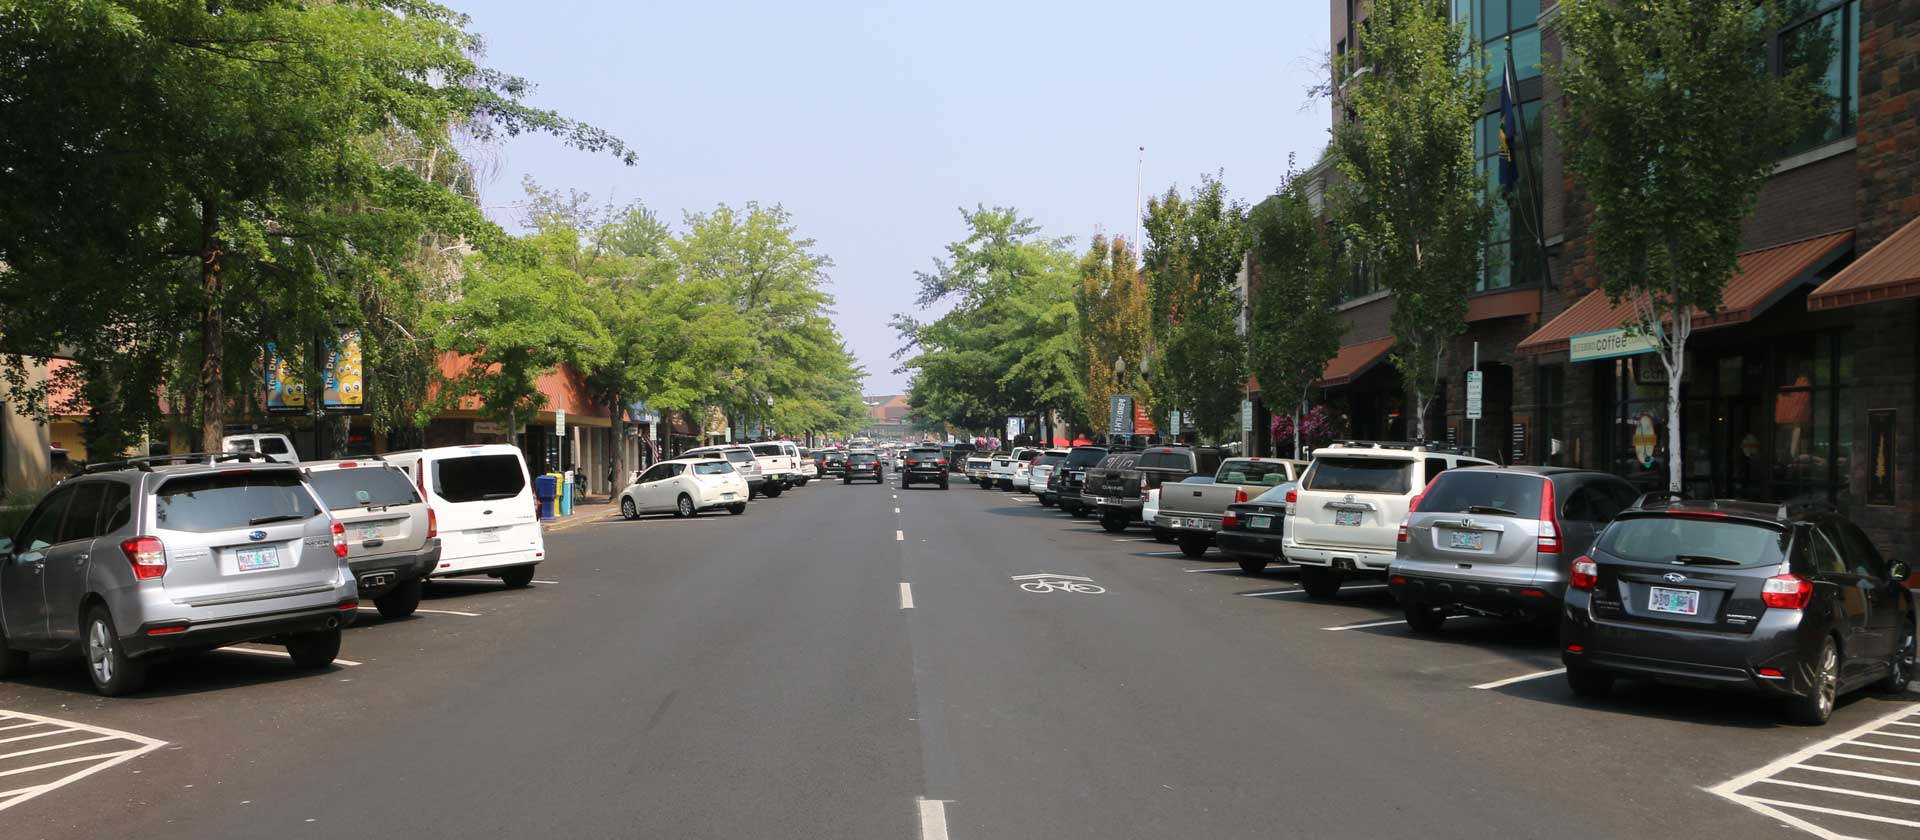 Looking down Wall Street on a summer day in Downtown Bend Oregon